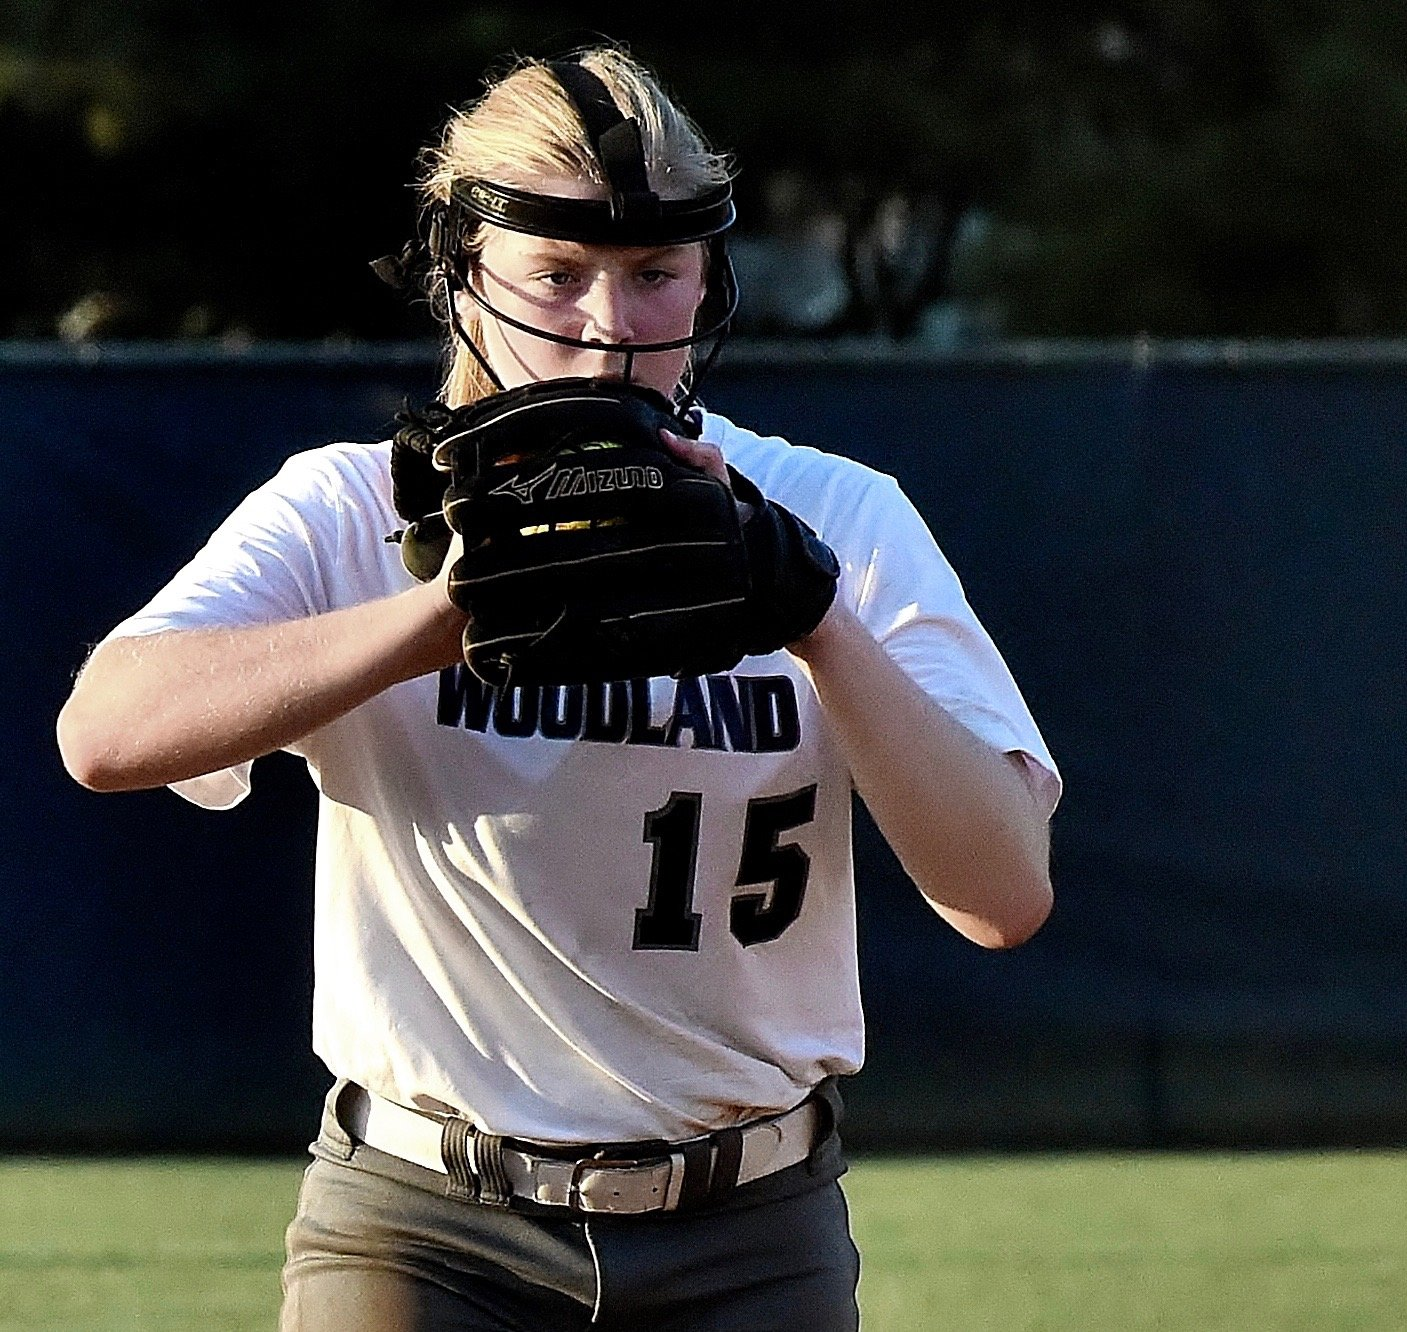 Woodland sophomore Lainey Baker prepares to pitch during a home game earlier this season against East Paulding. Baker and Co. will head to Chamblee for a Class 5A state playoffs first-round series, beginning at 2 p.m. Tuesday.